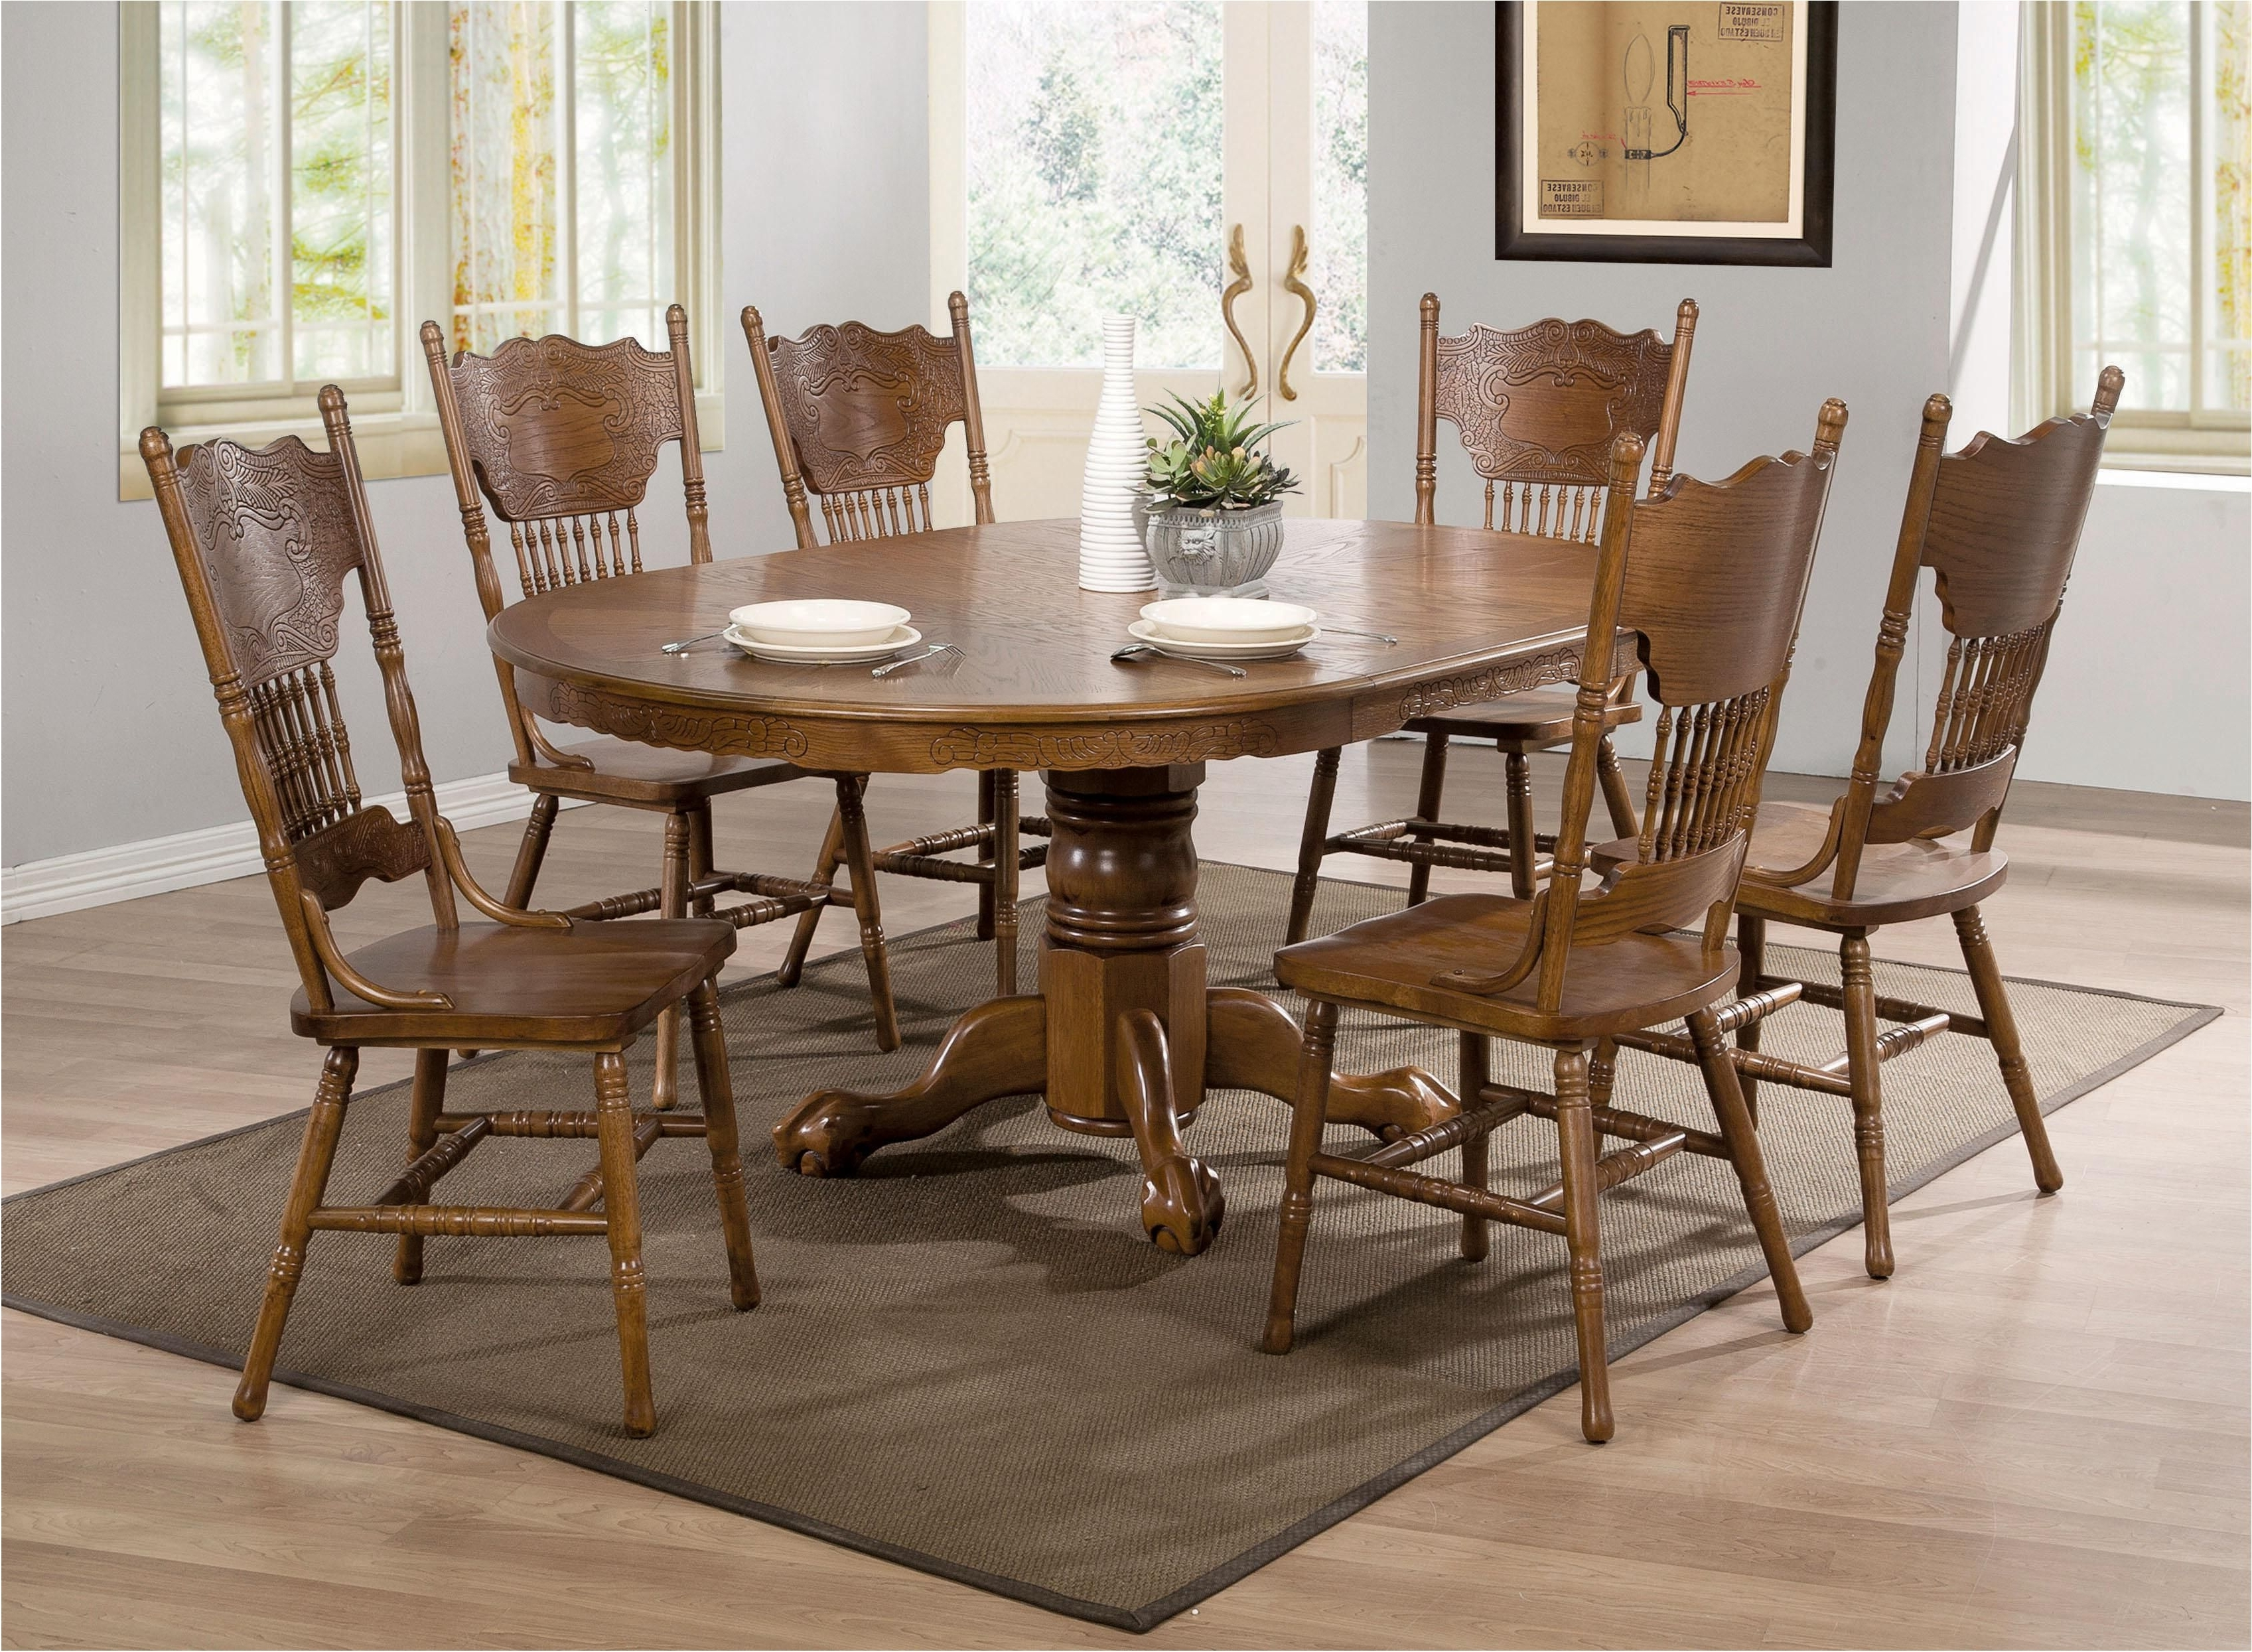 Popular Incredible Decorative Oak Dining Table Set 16 Kitchen And Chairs Pertaining To Oak Dining Tables Sets (View 2 of 25)